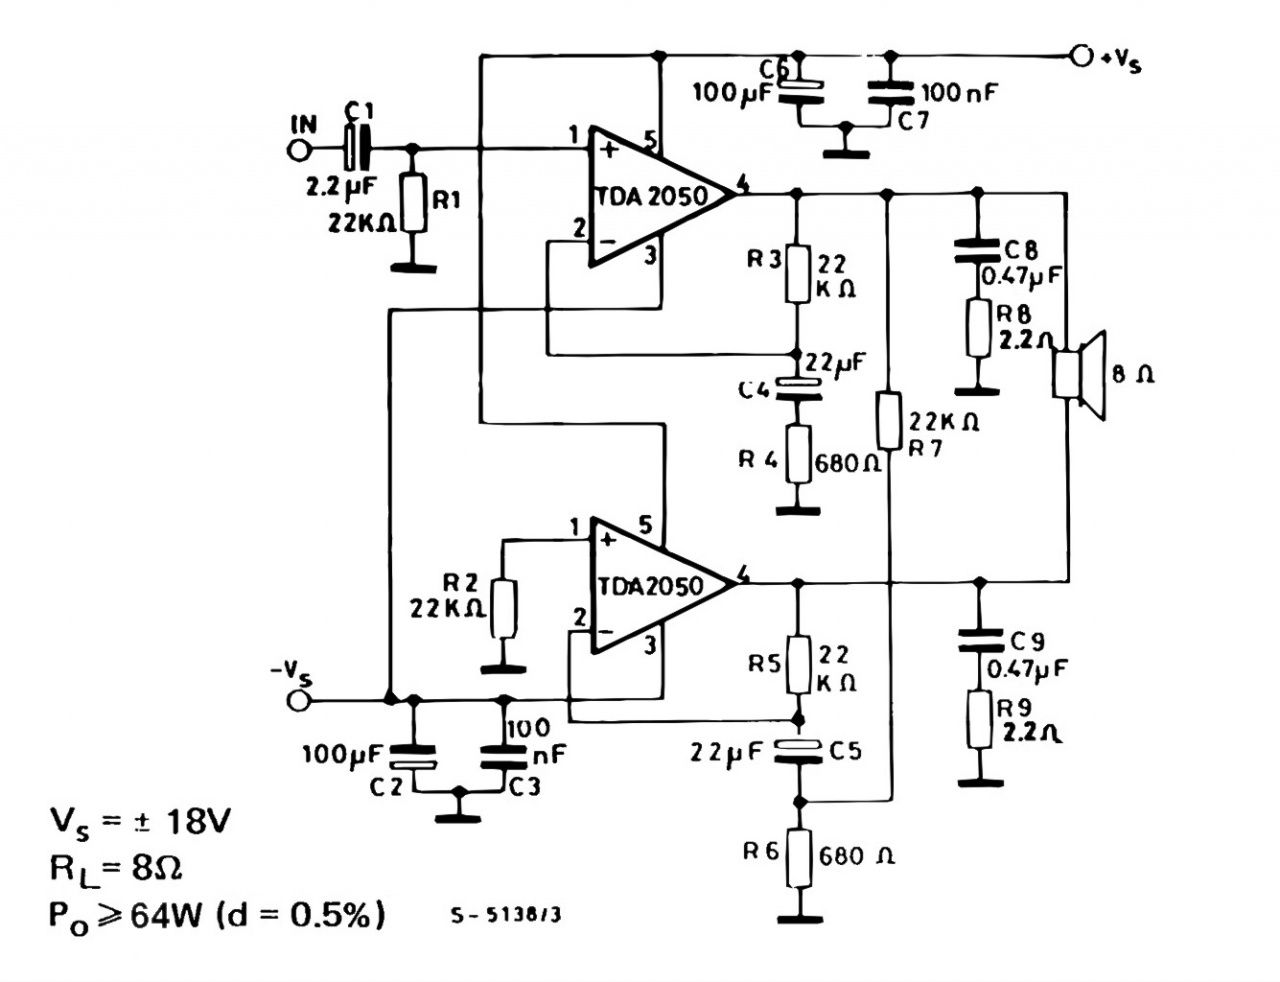 tda 2050 simple amp circuit bridge circuit diagram images rh circuitdiagramimages blogspot com tda2050 bridge amplifier circuit diagram pdf tda2050 bridge amplifier circuit diagram pdf